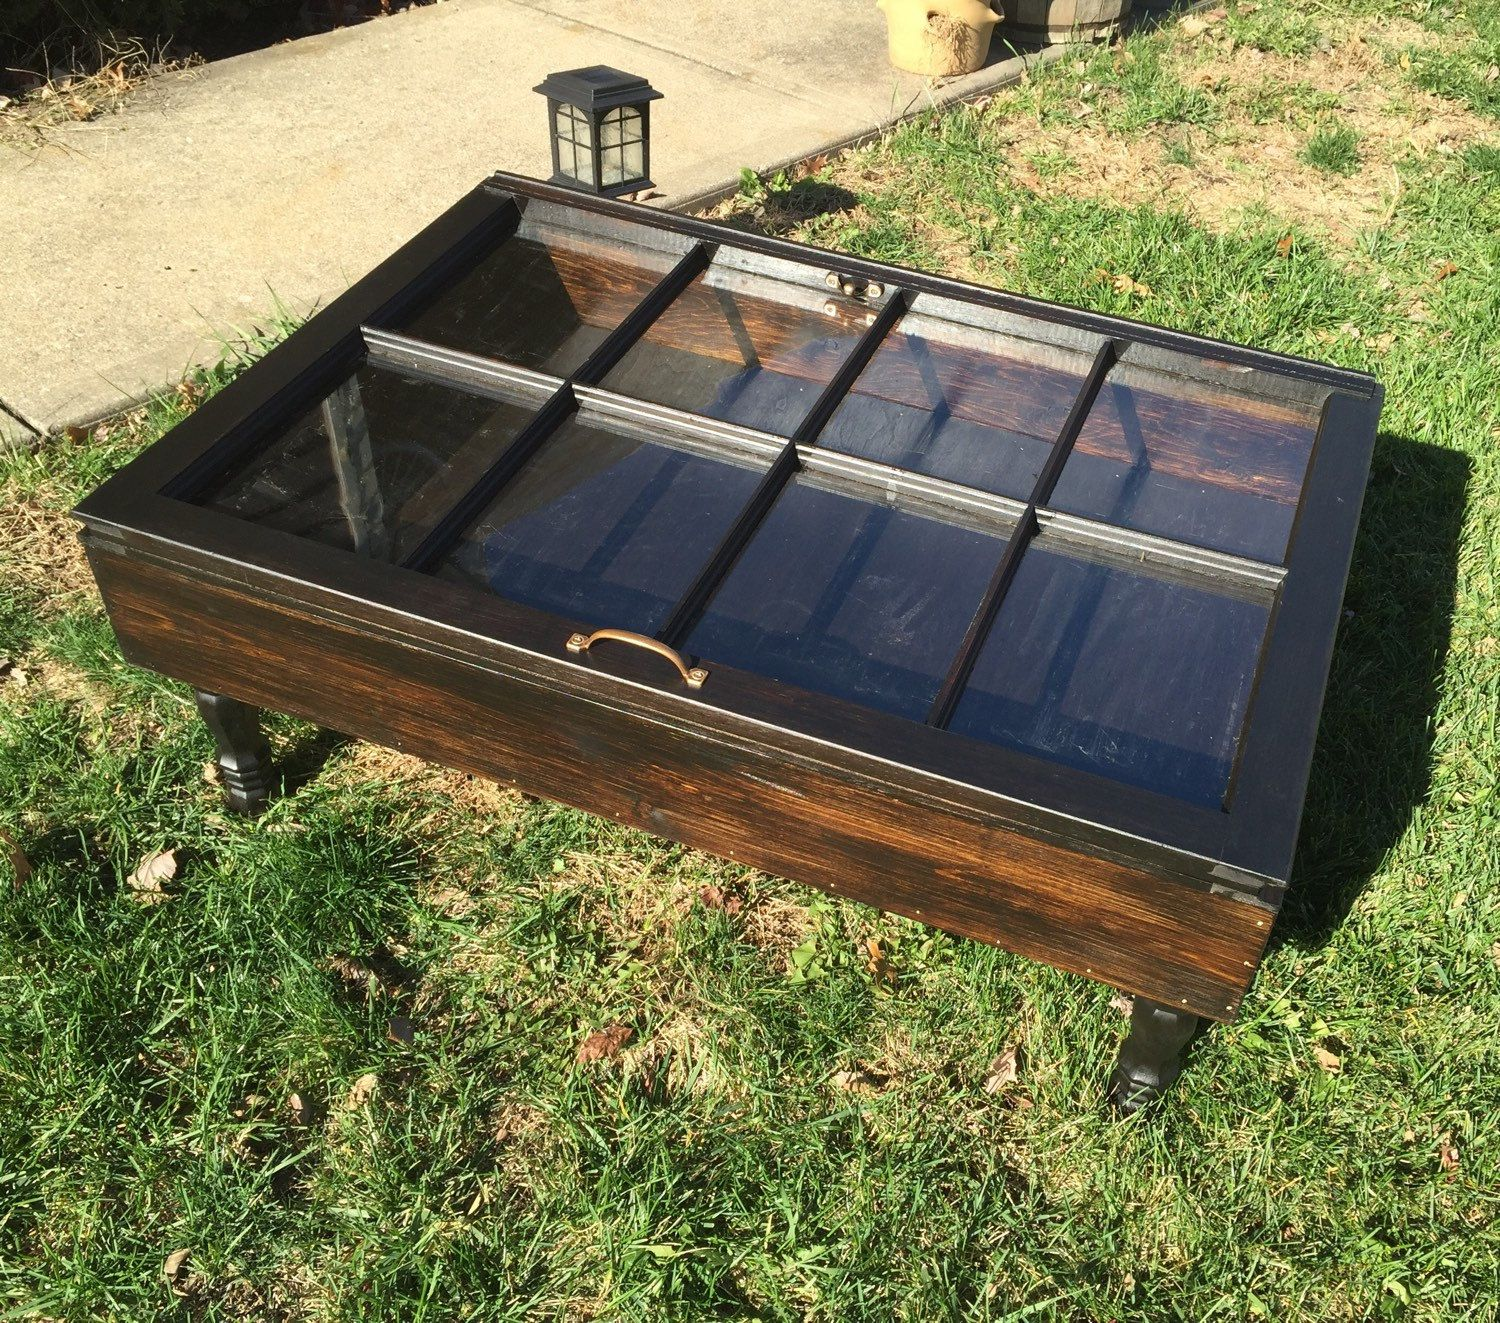 Best Shadow Box Ideas Pictures Decor And Remodel Wood Shadow Box Display Coffee Table Shadow Box Coffee Table